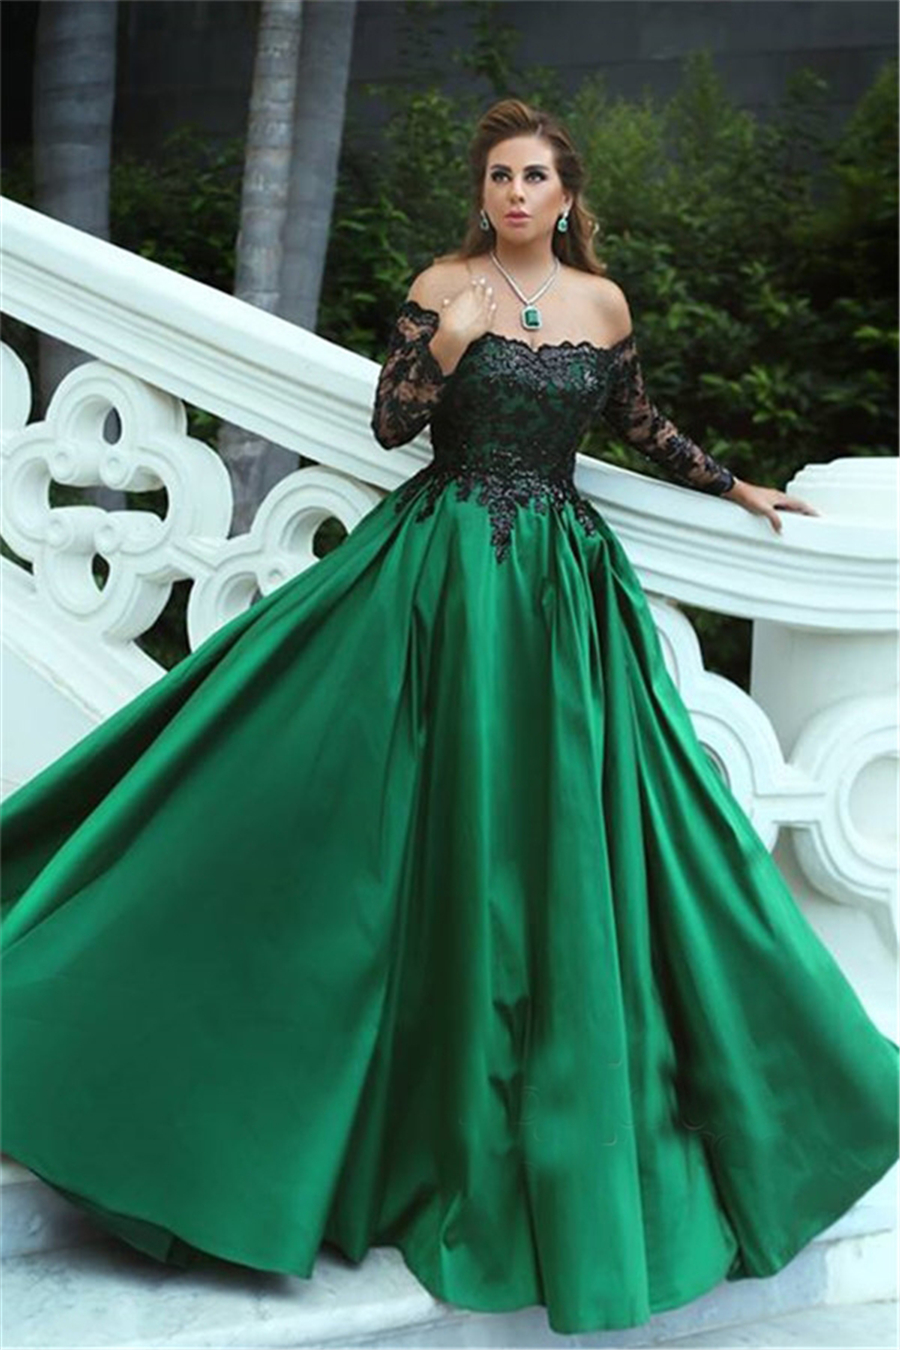 Black-Appliques Sleeves Long Off-the-Shoulder A-Line Elegant Prom Dress Black And Green Long Sleeves Evening Gowns Vestido Longo